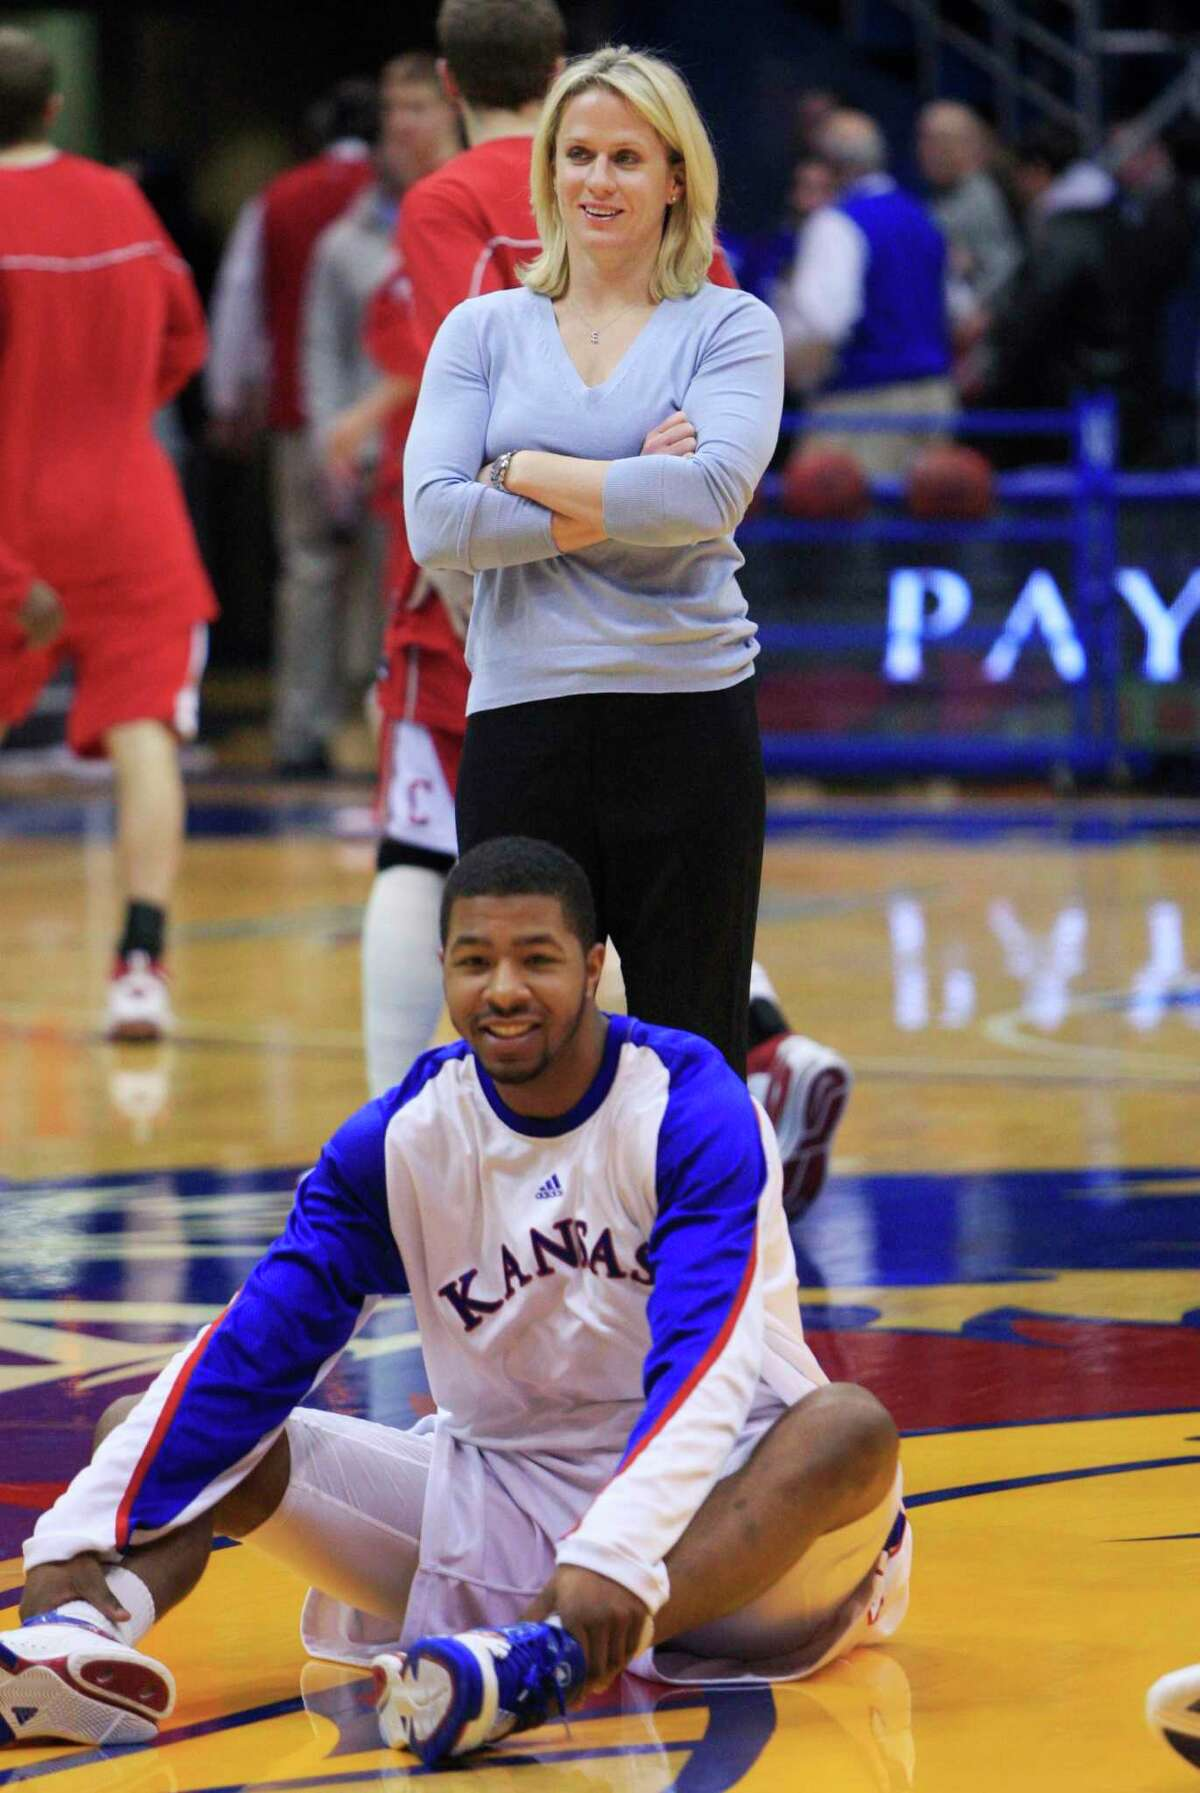 In this Jan. 8, 2010 file photo, Kansas strength coach Andrea Hudy stands behind a Kansas basketball player as they warm up for an NCAA college basketball game against Cornell in Lawrence, Kan. Hudy was named director of sports performance for UConn women's basketball on Wednesday.